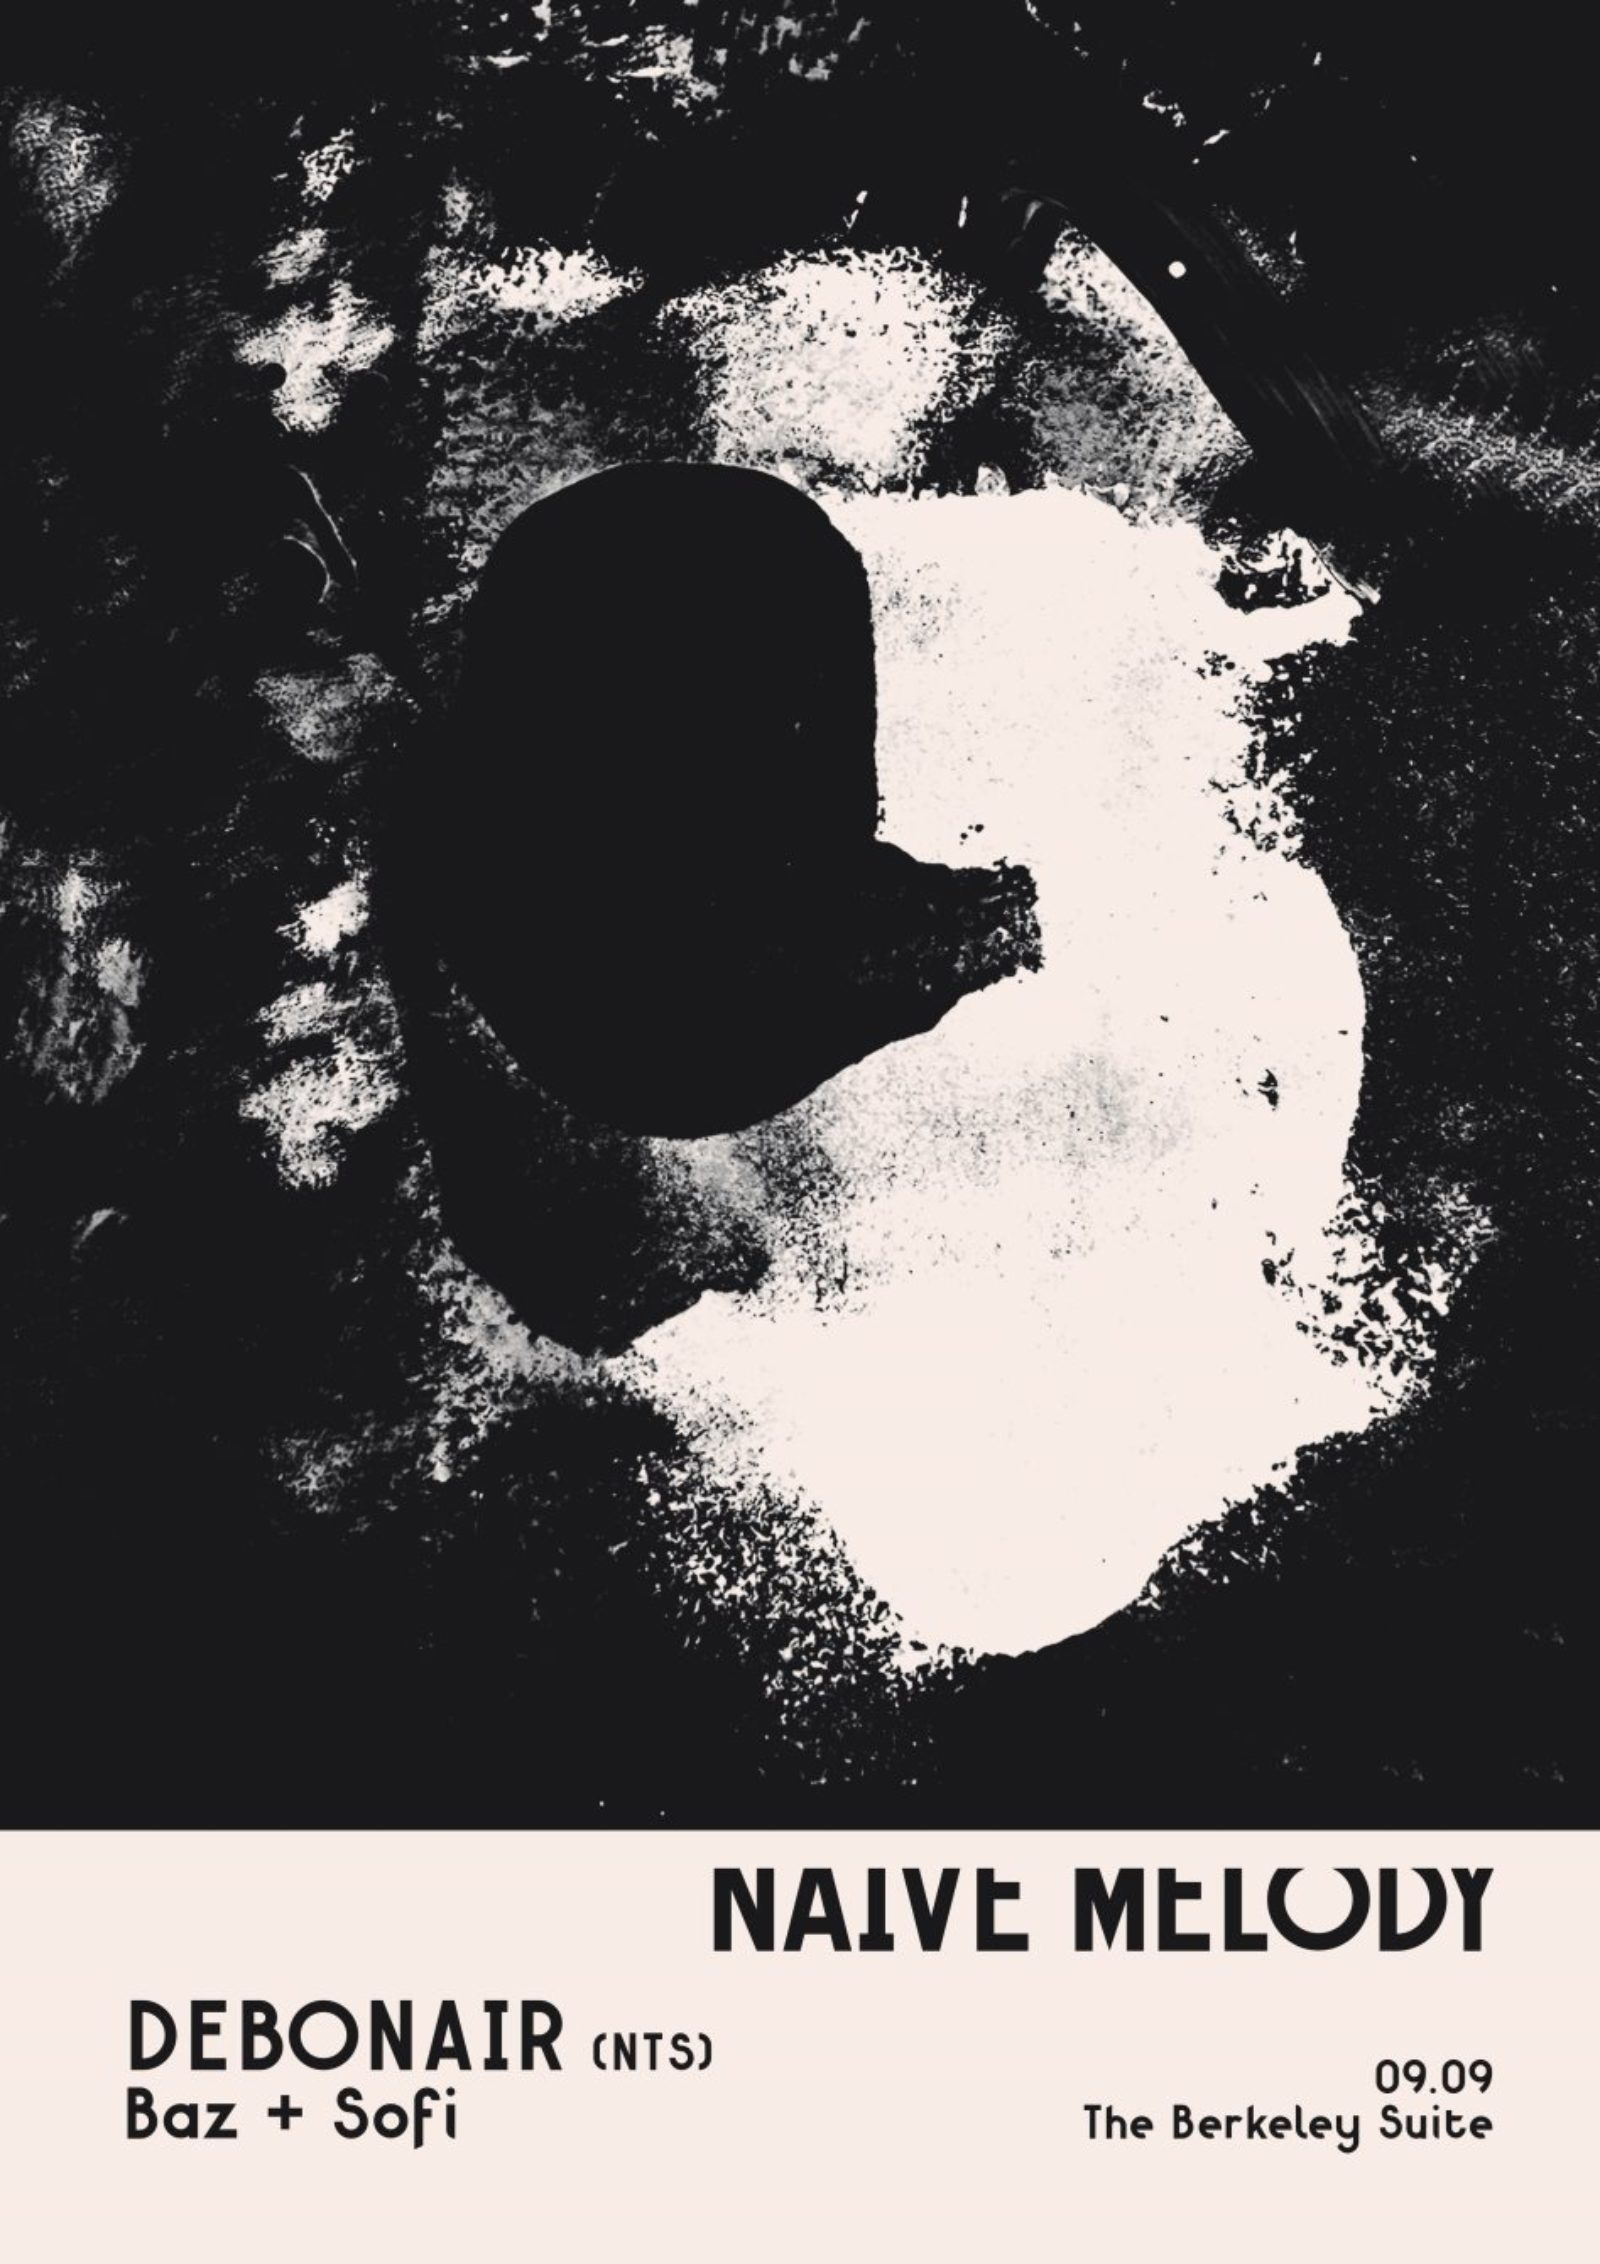 Naive Melody with DEBONAIR